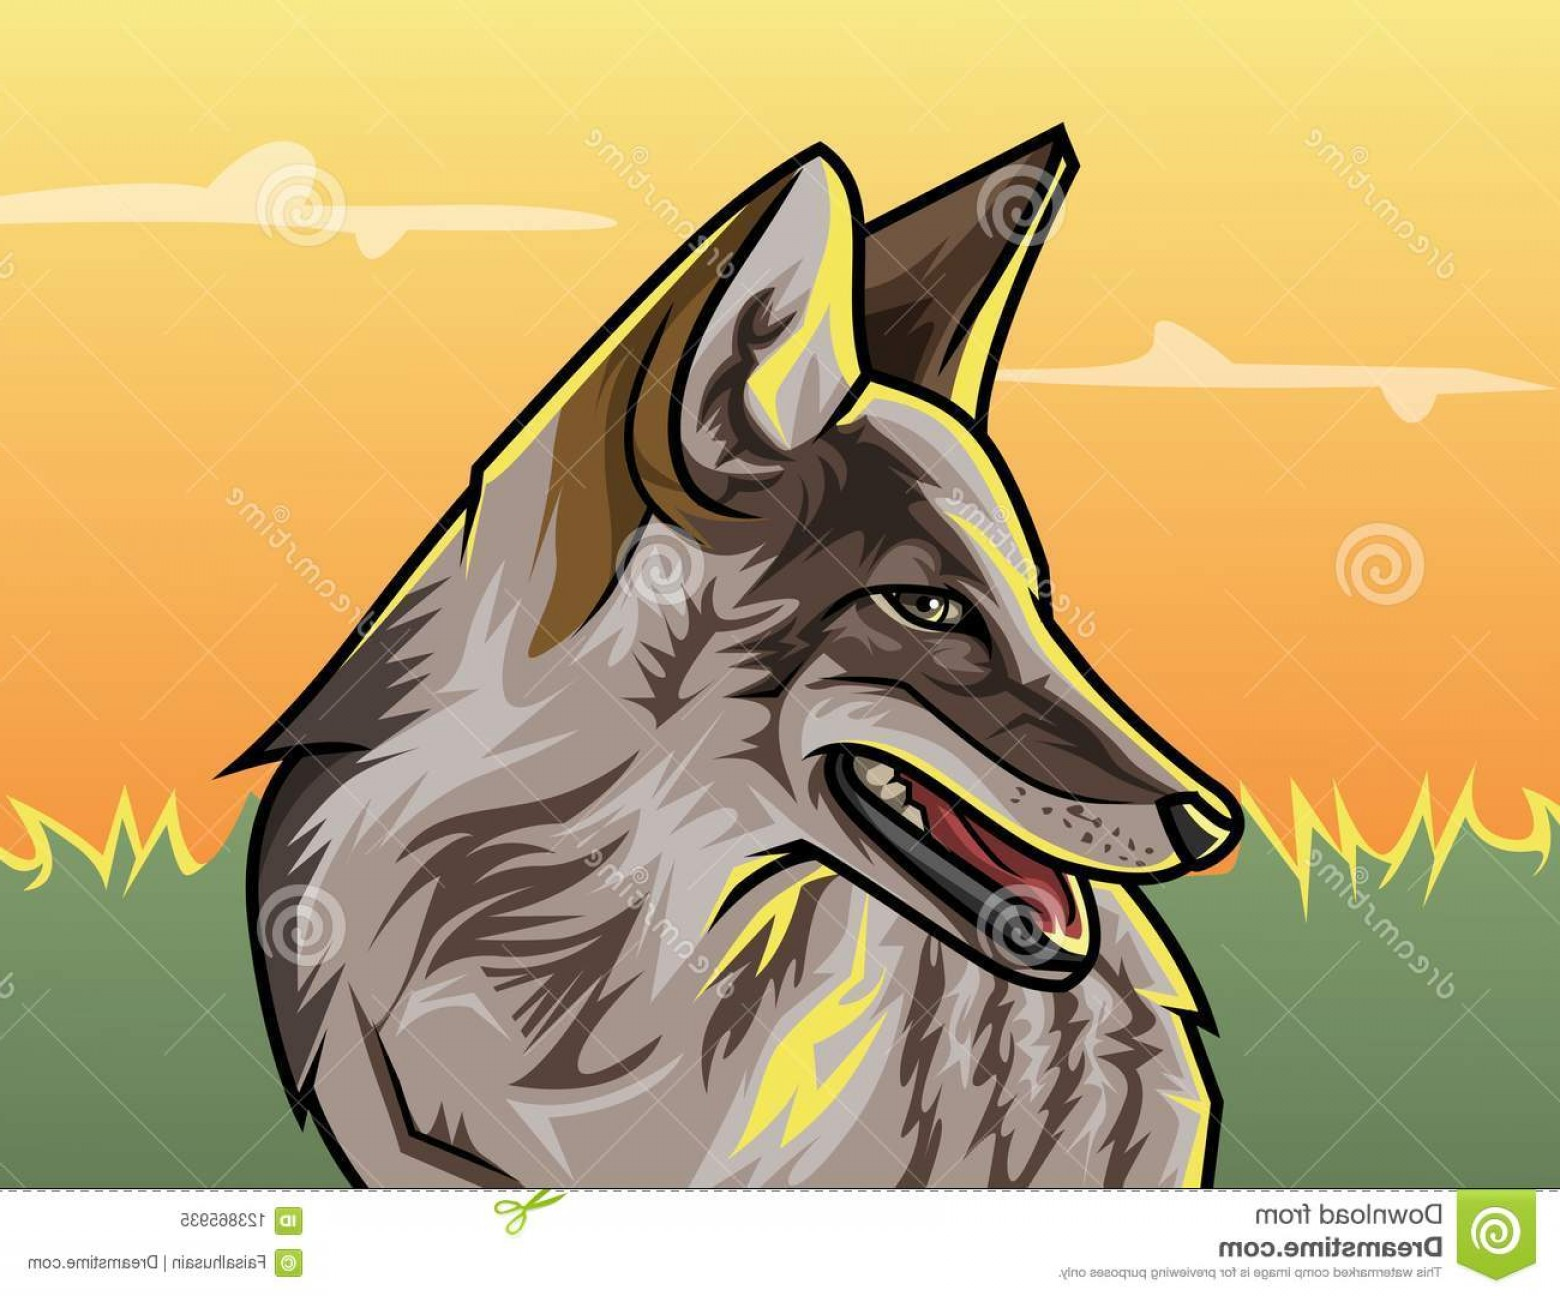 GTA Photo To Vector: Wild Wolf Gta Style Vector Illustration Wild Wolf Vector Illustration Like Gta Style Eps File Image